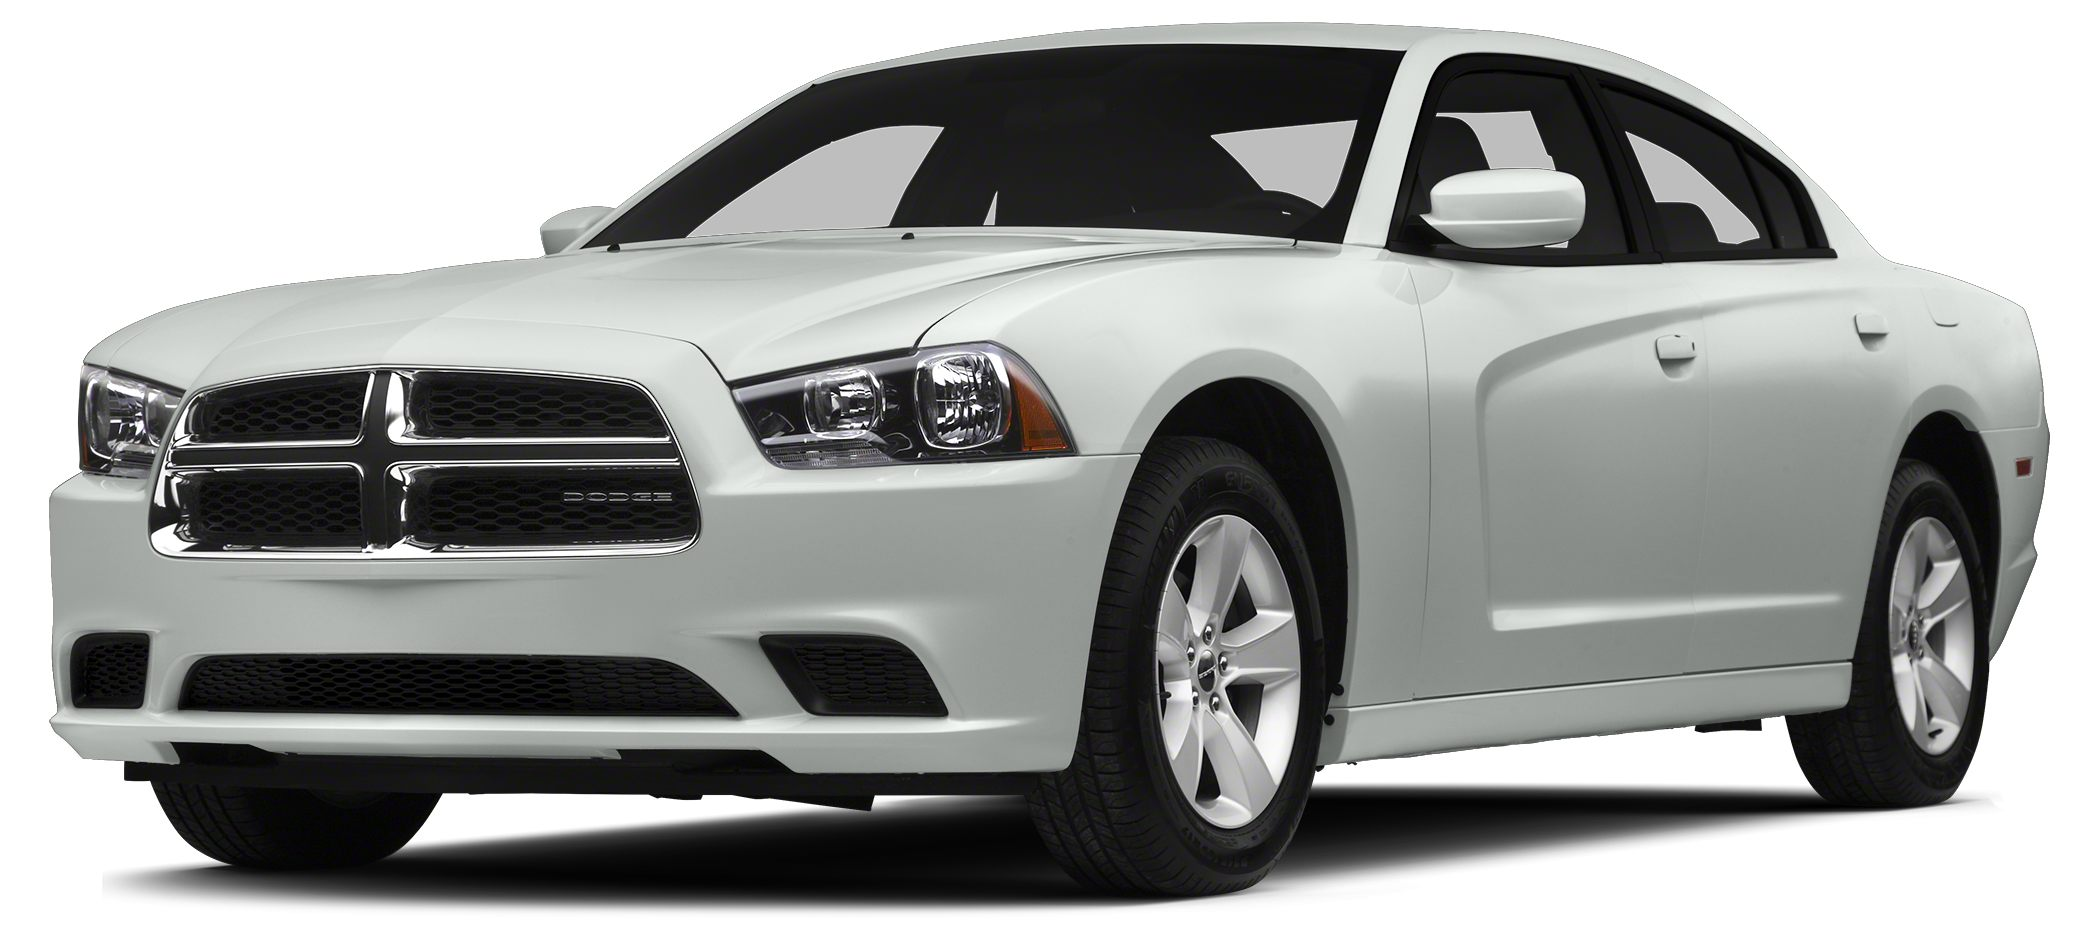 2014 Dodge Charger SE automatic pw pl pm ps Keyless Entry rear defrost traction control ti